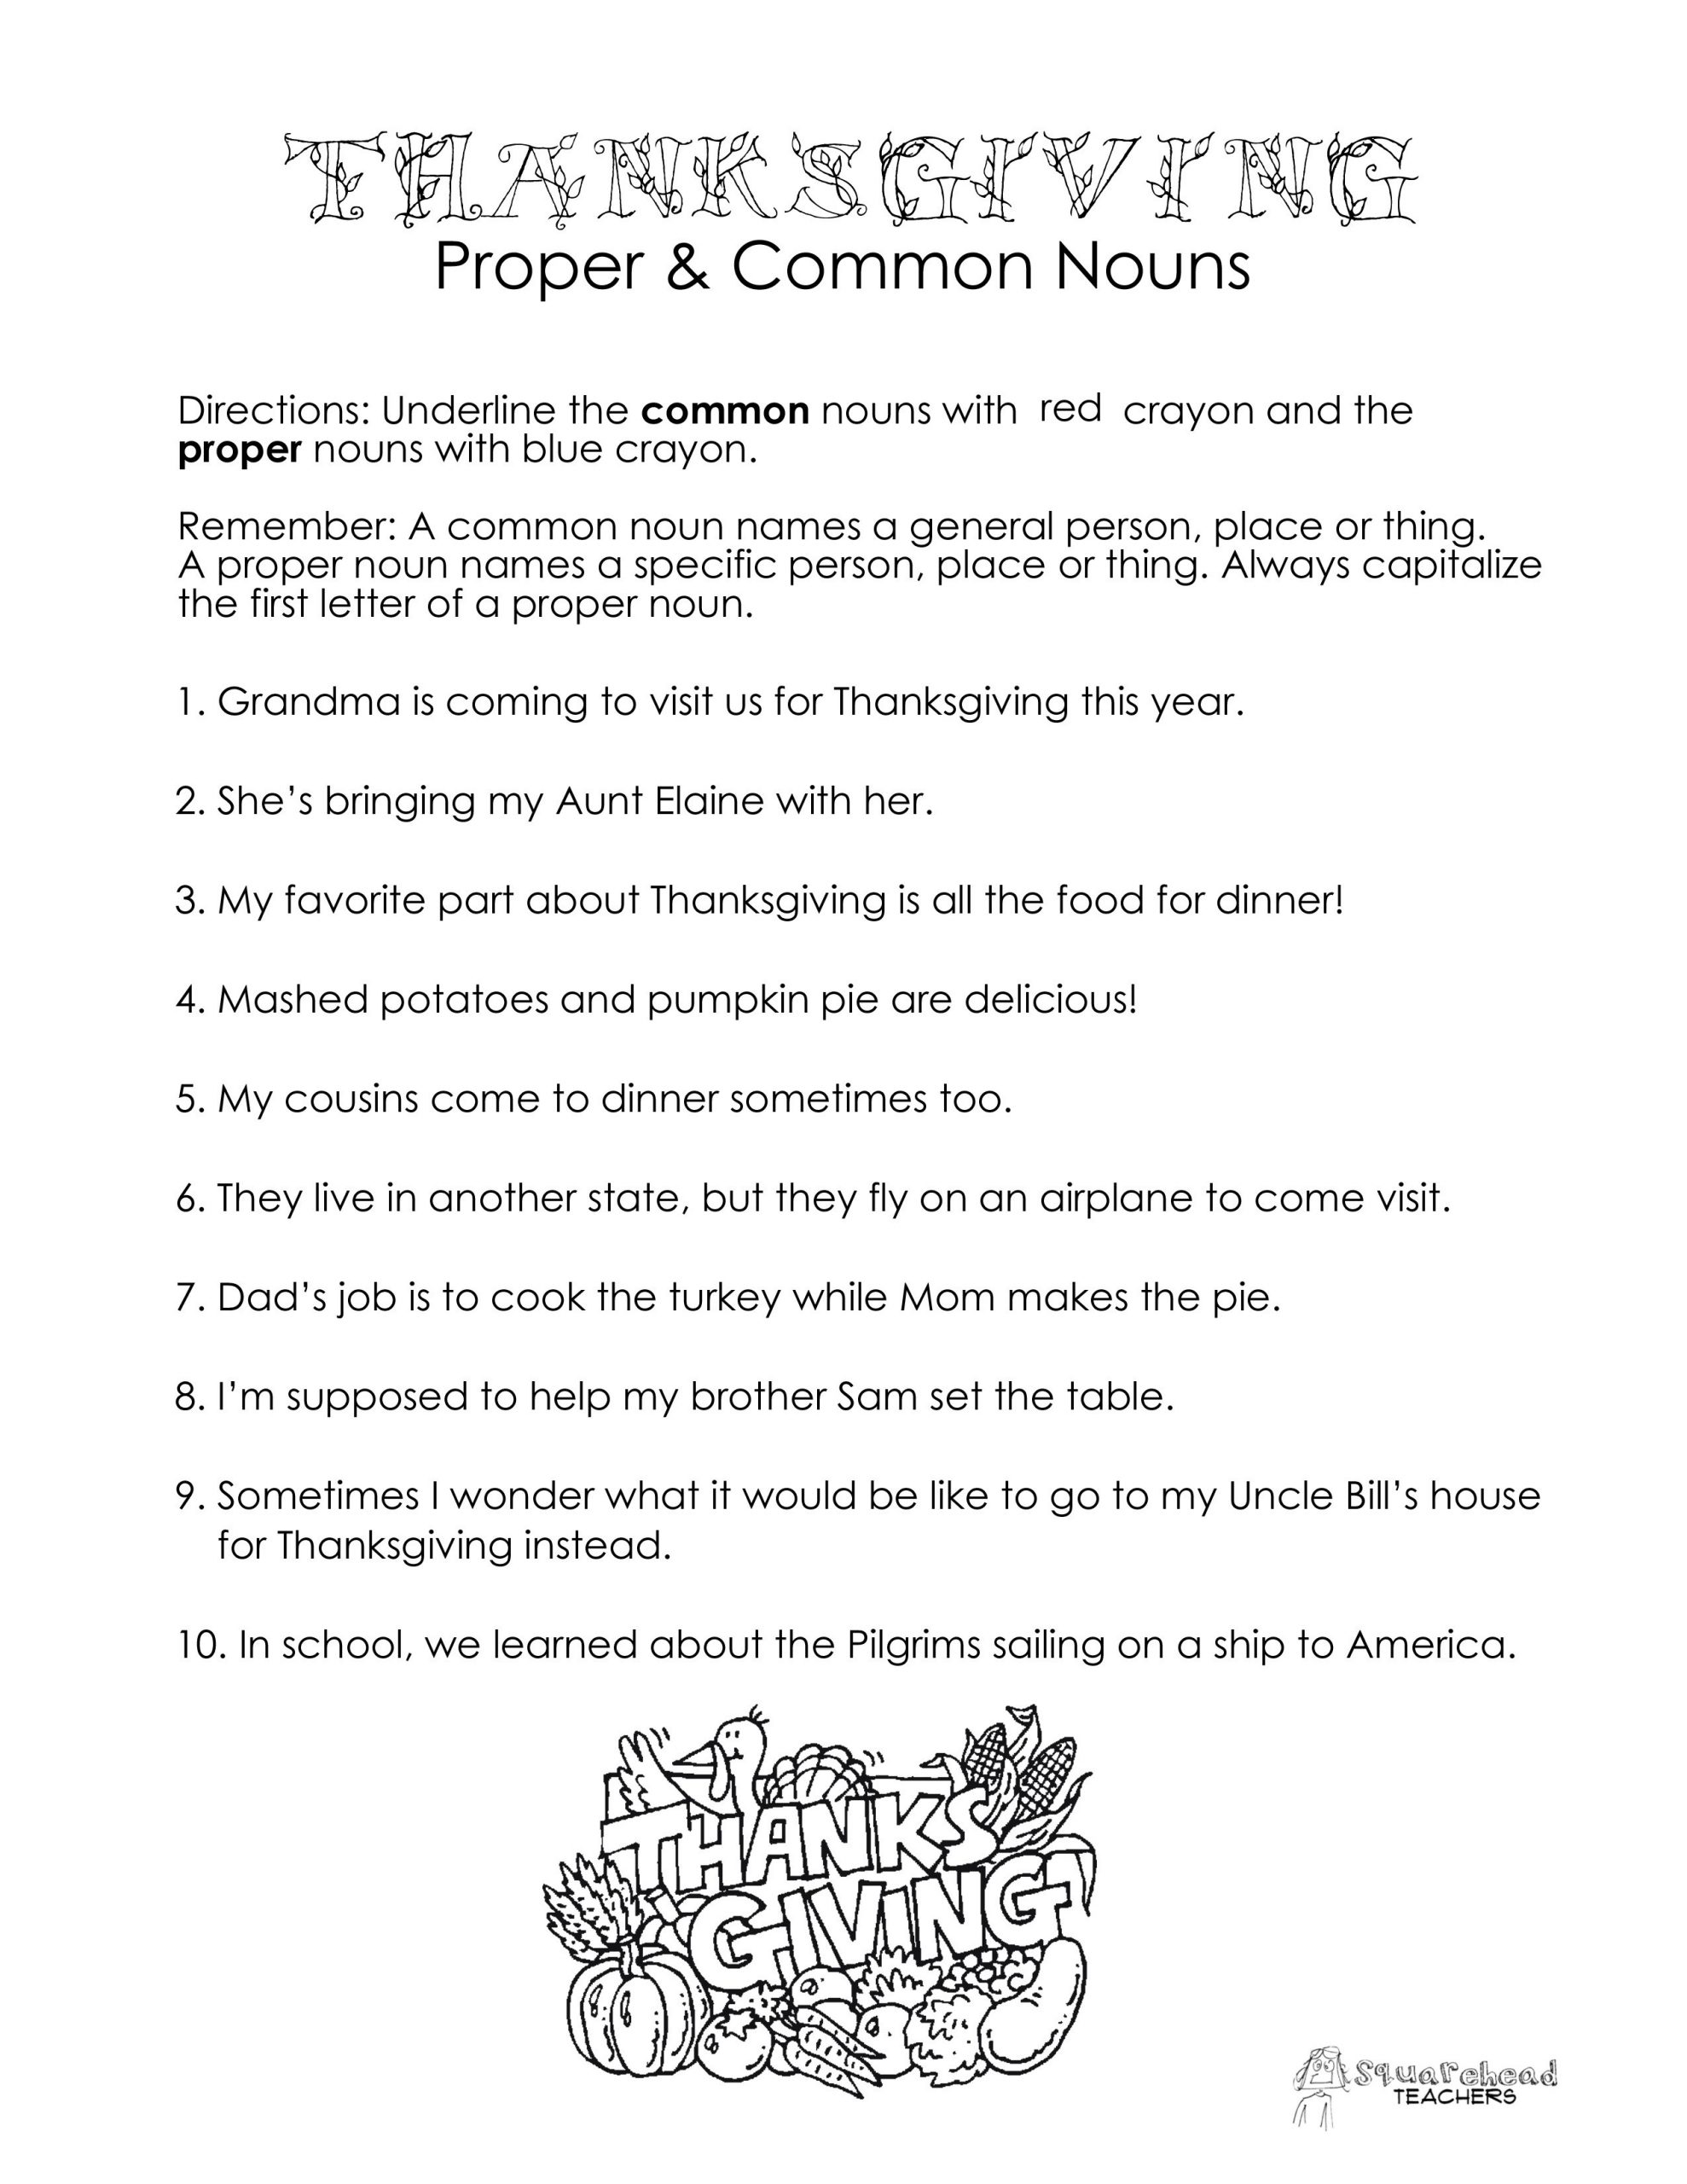 Proper Nouns Worksheet 2nd Grade Thanksgiving Mon Vs Proper Nouns Worksheet